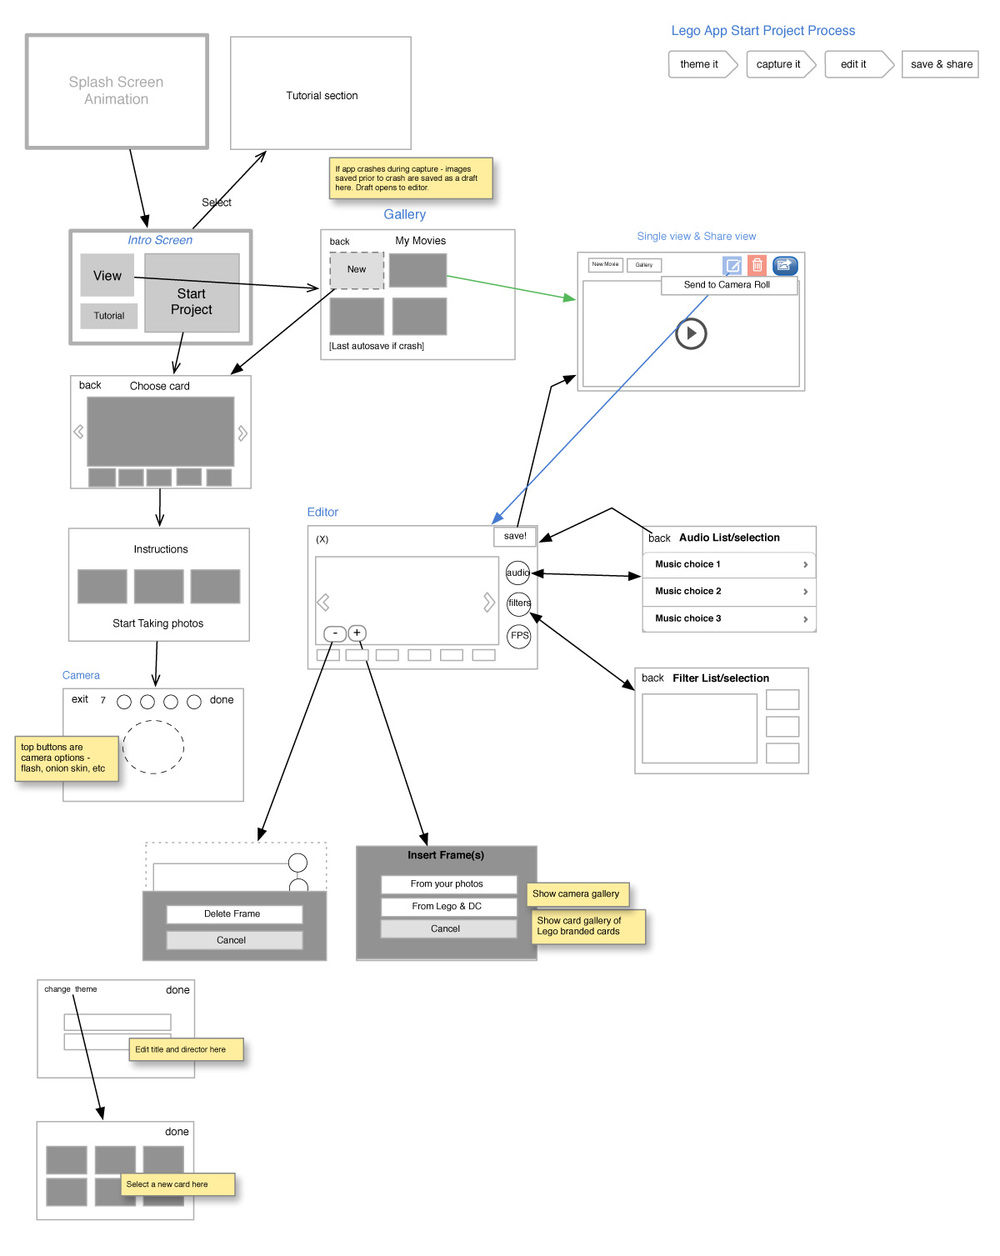 IA & WIres - Created user flow documentation and detailed wireframes for app experience.